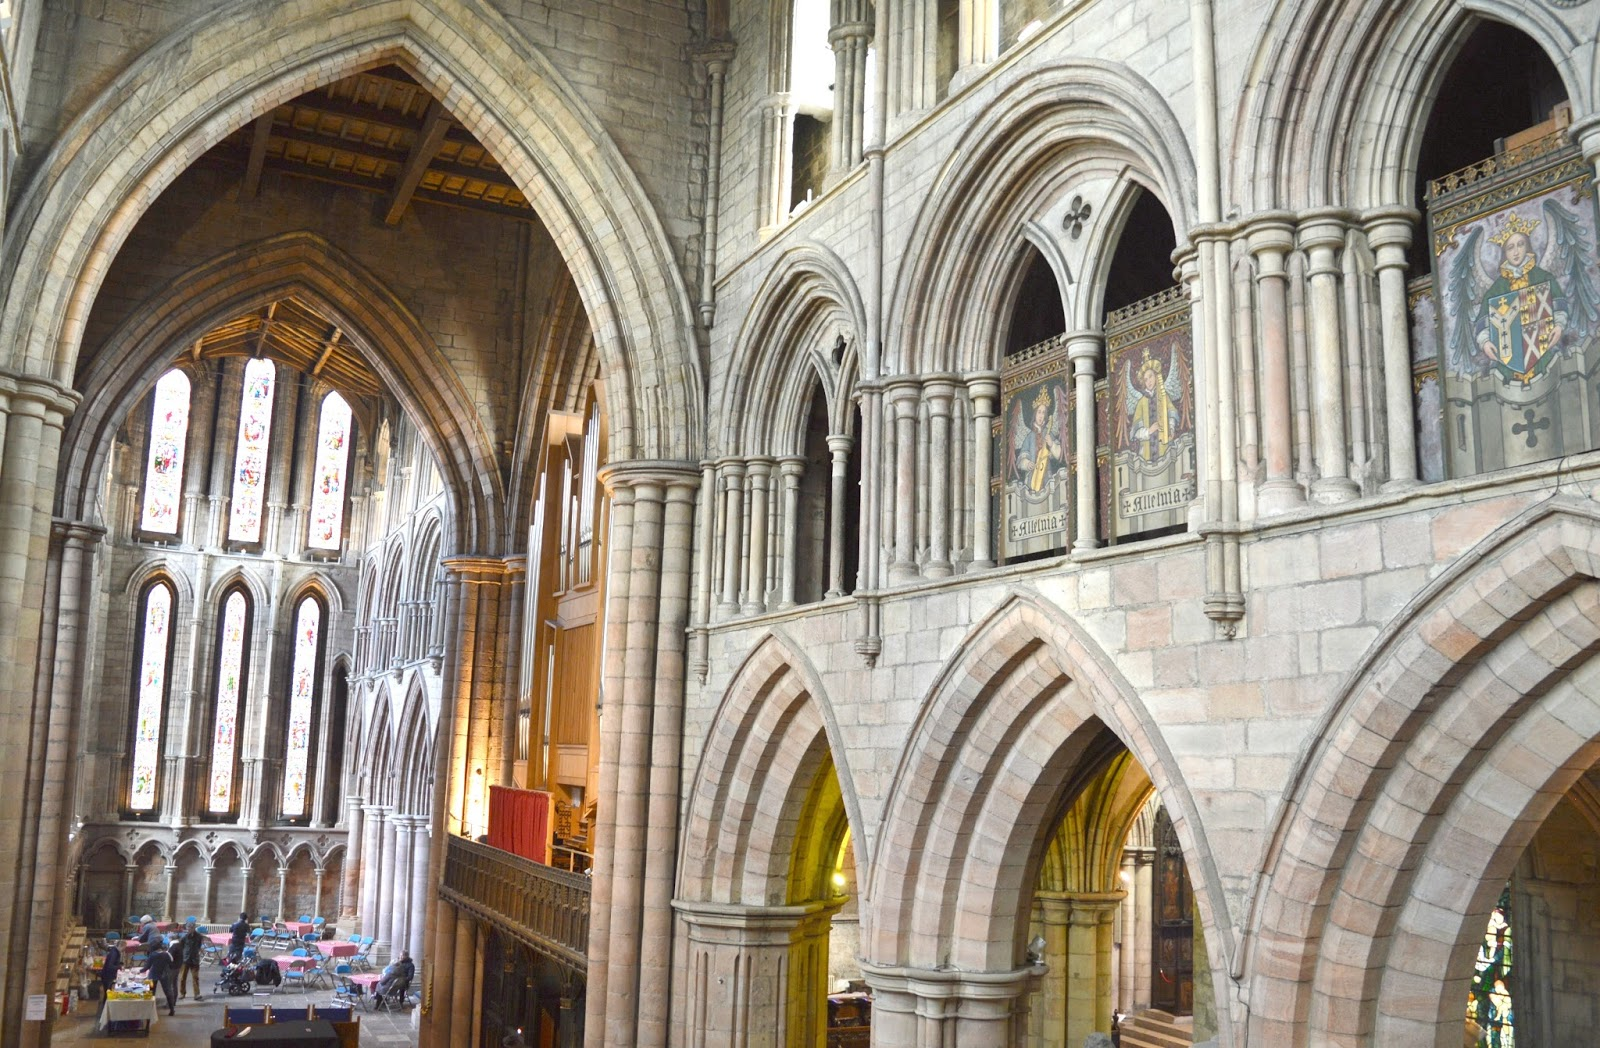 A Day Trip to Hexham Abbey